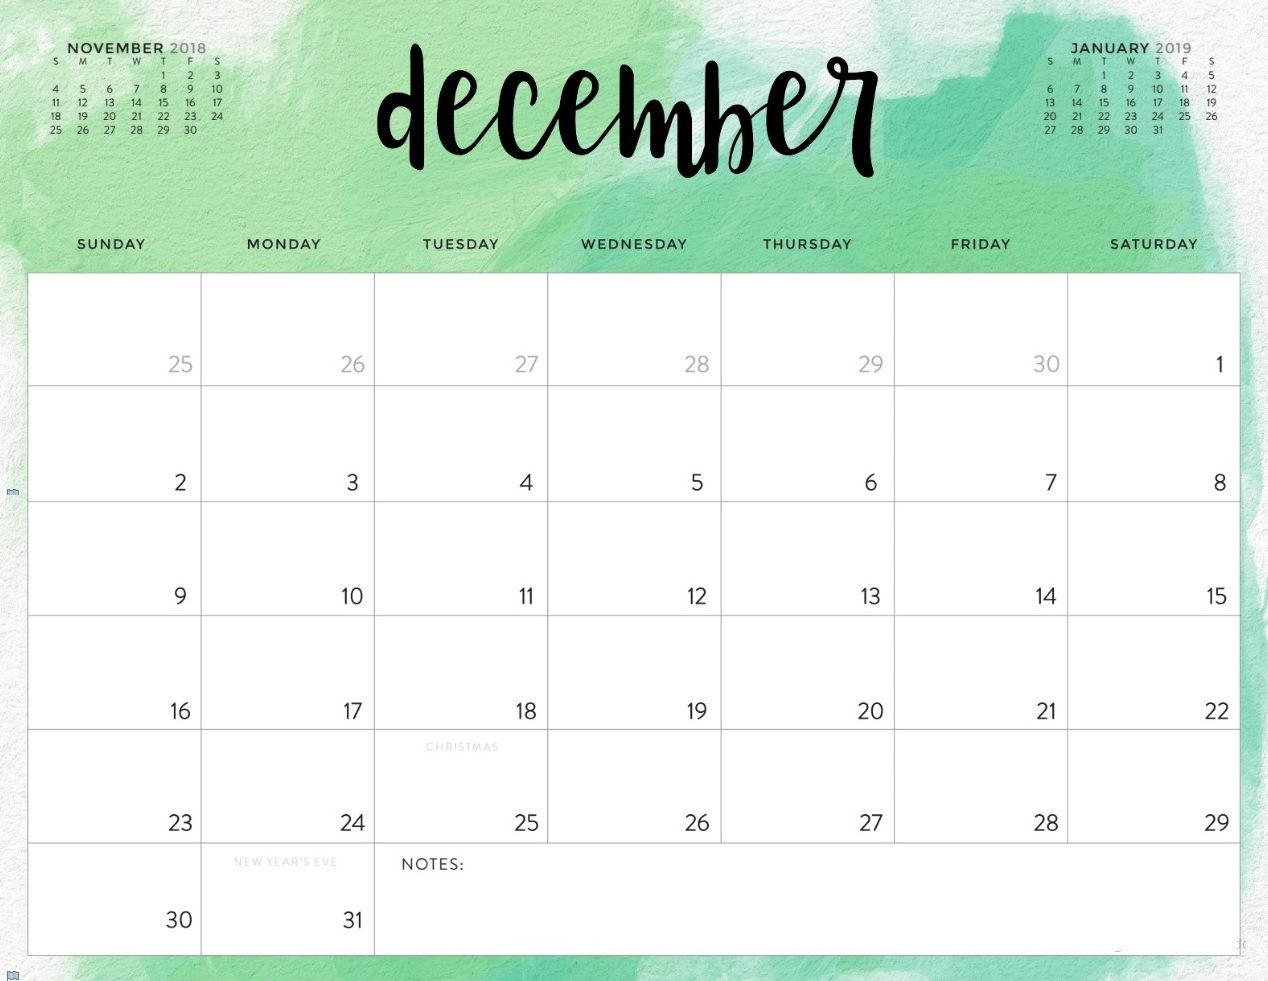 Free December 2018 Printable Calendar Blank Templates - Calendar in Blank Printable Calendar December